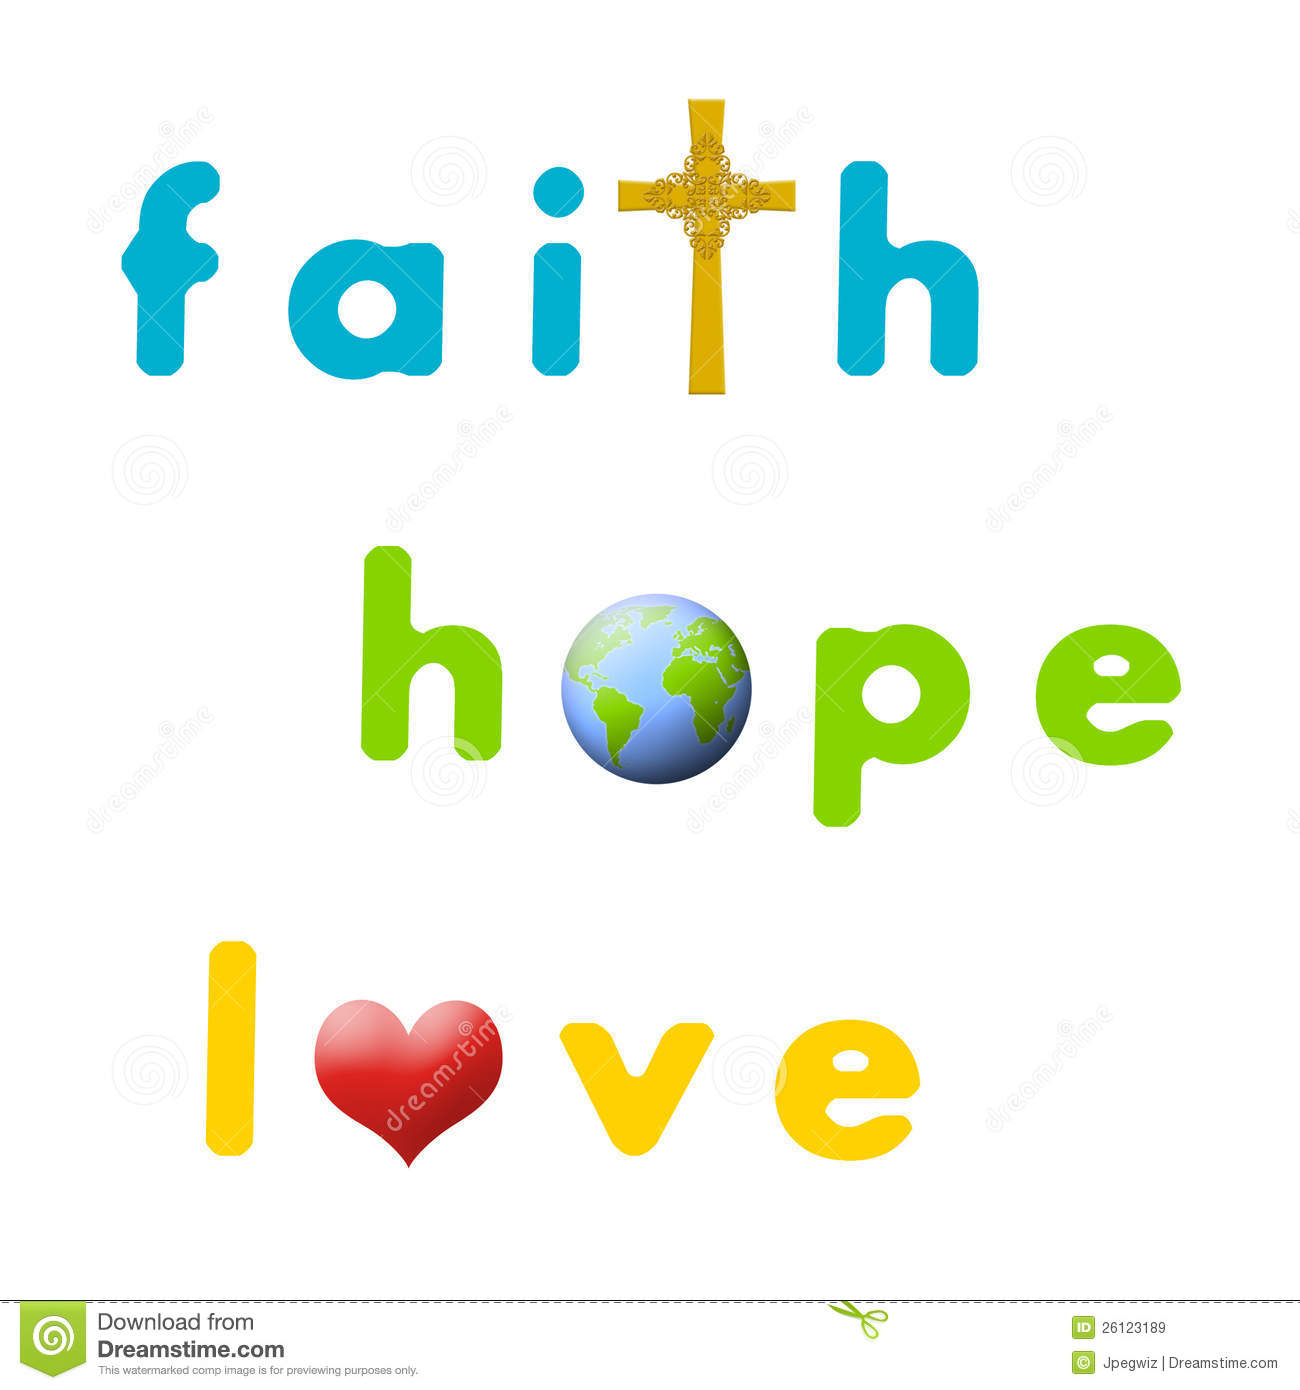 Love and hope clipart png royalty free library Faith, Hope, Love Royalty Free Stock Images - Image: 26123189 png royalty free library